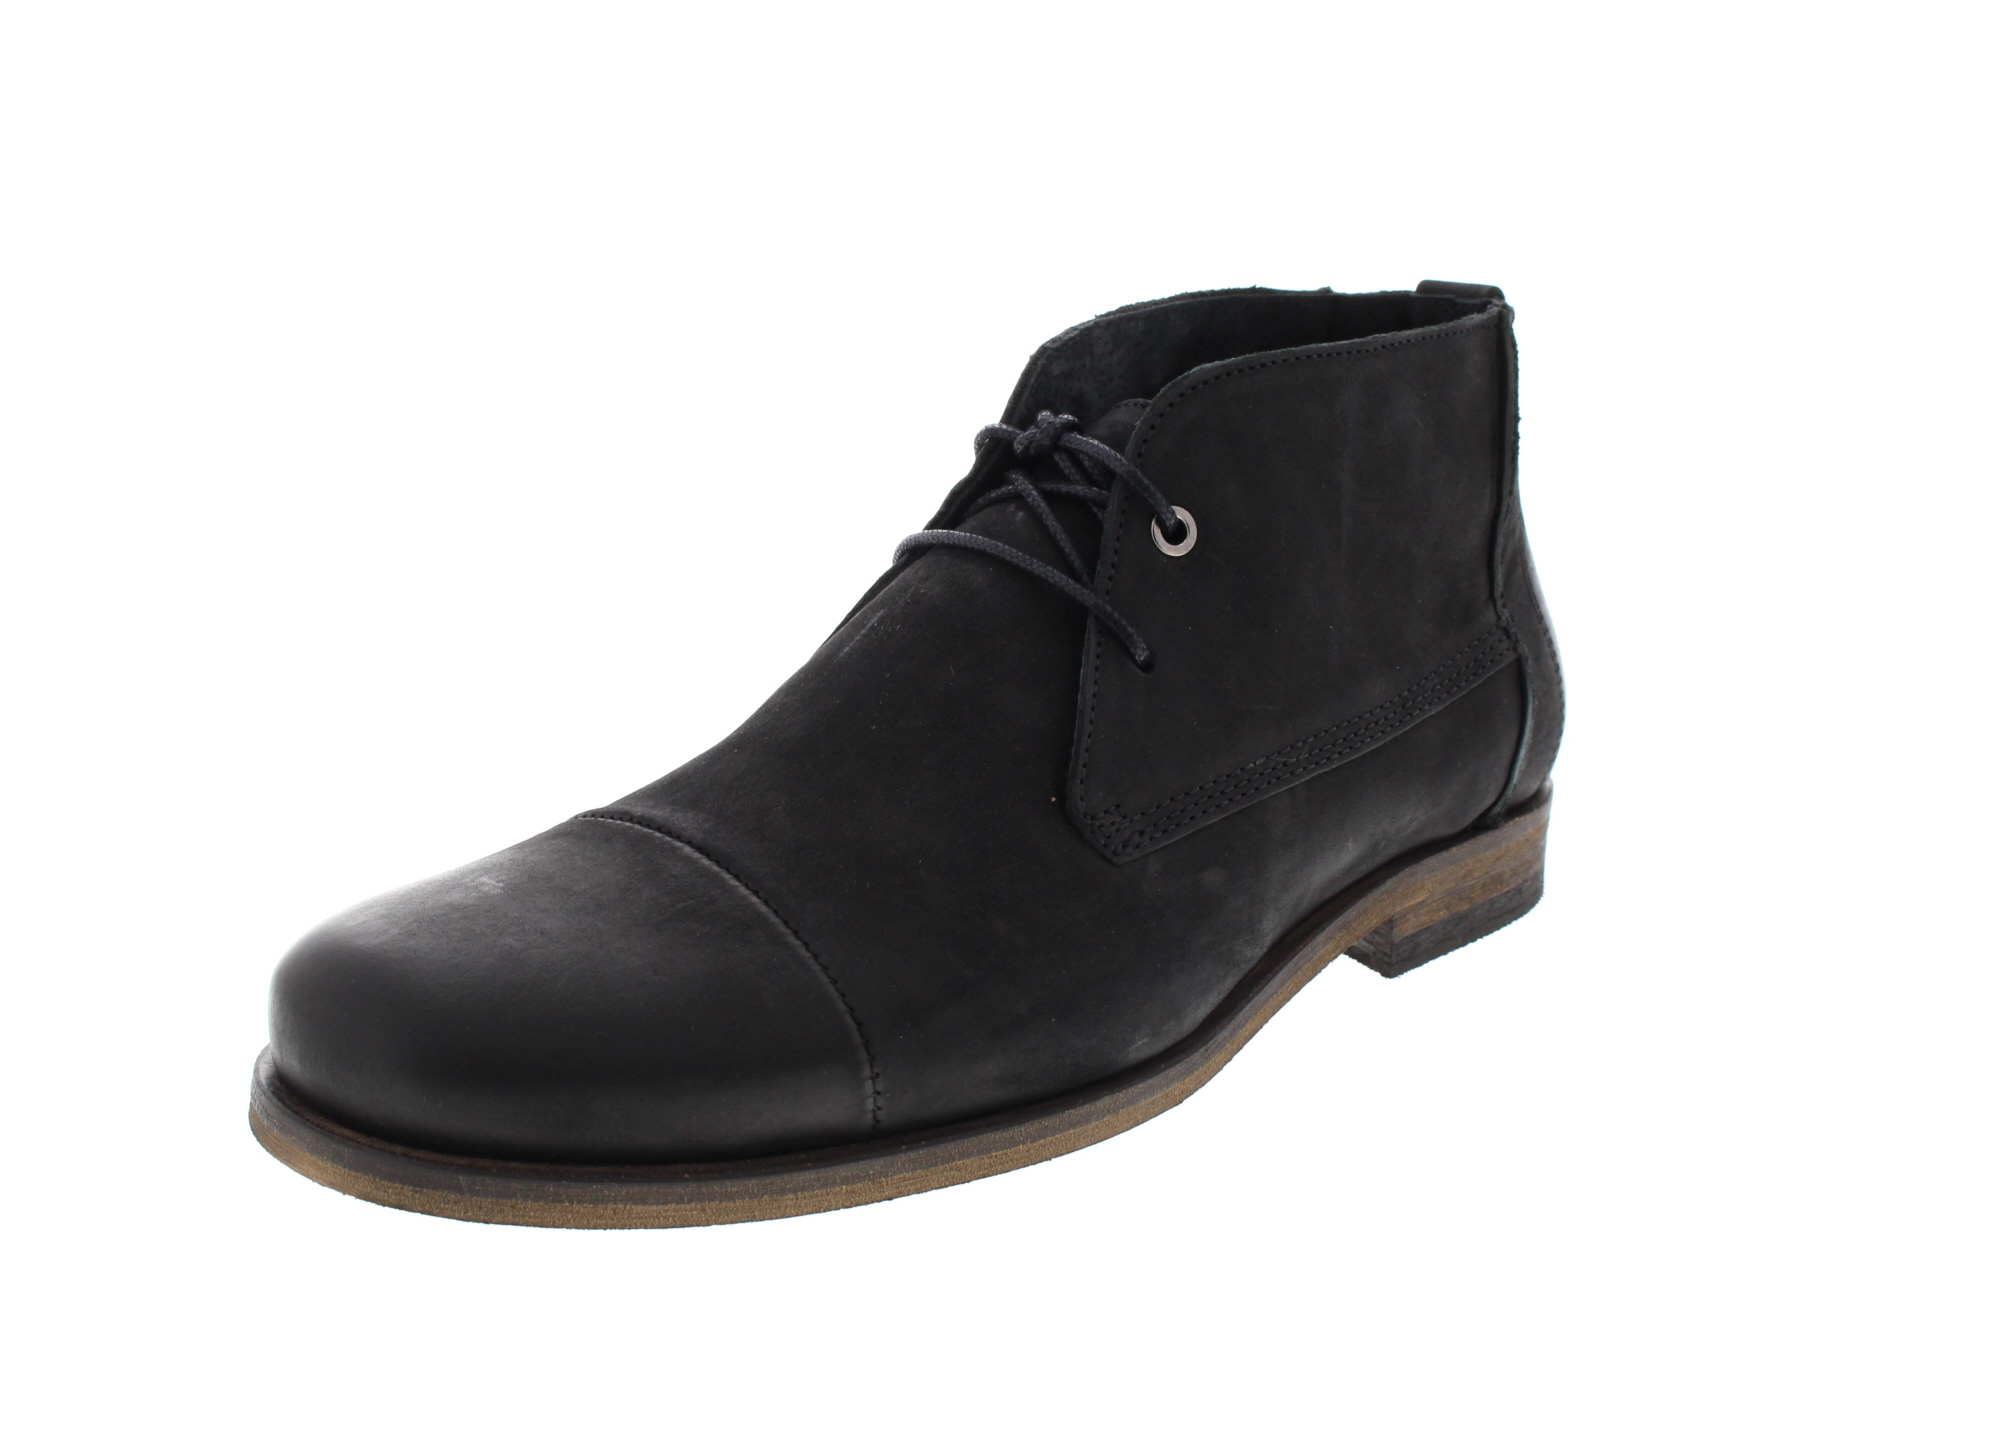 HAGHE by HUB Herrenschuhe - Boots IVAN - black_0